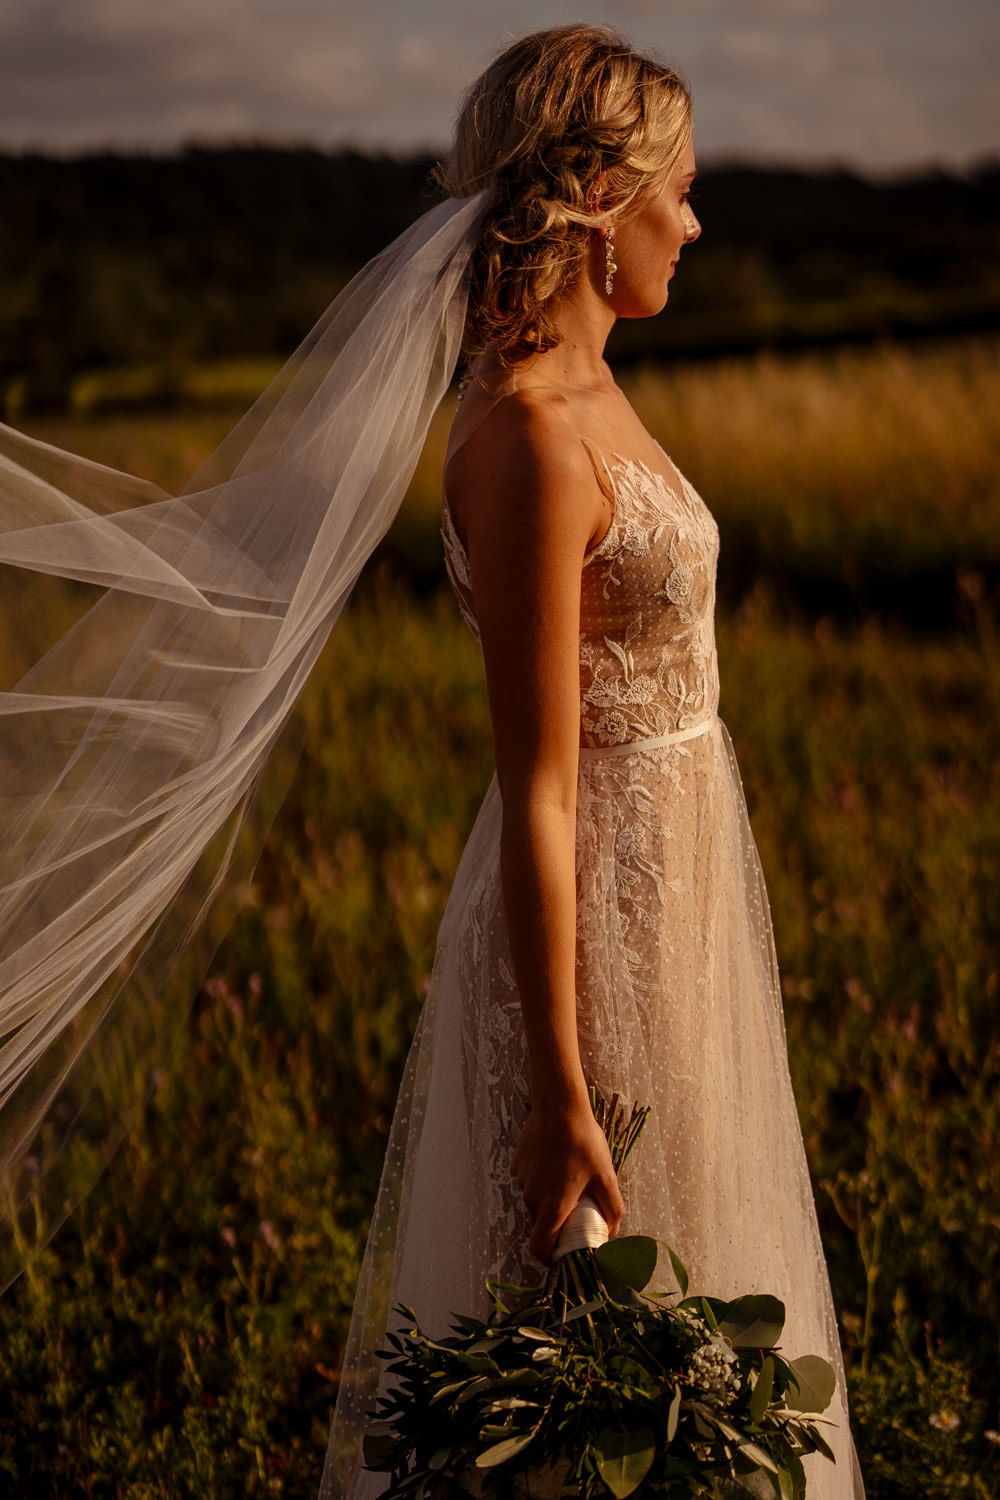 BHLDN Dress Gown Bride Bridal Tulle Lace Train Veil Industrial Barn Wedding Toast Of Leeds